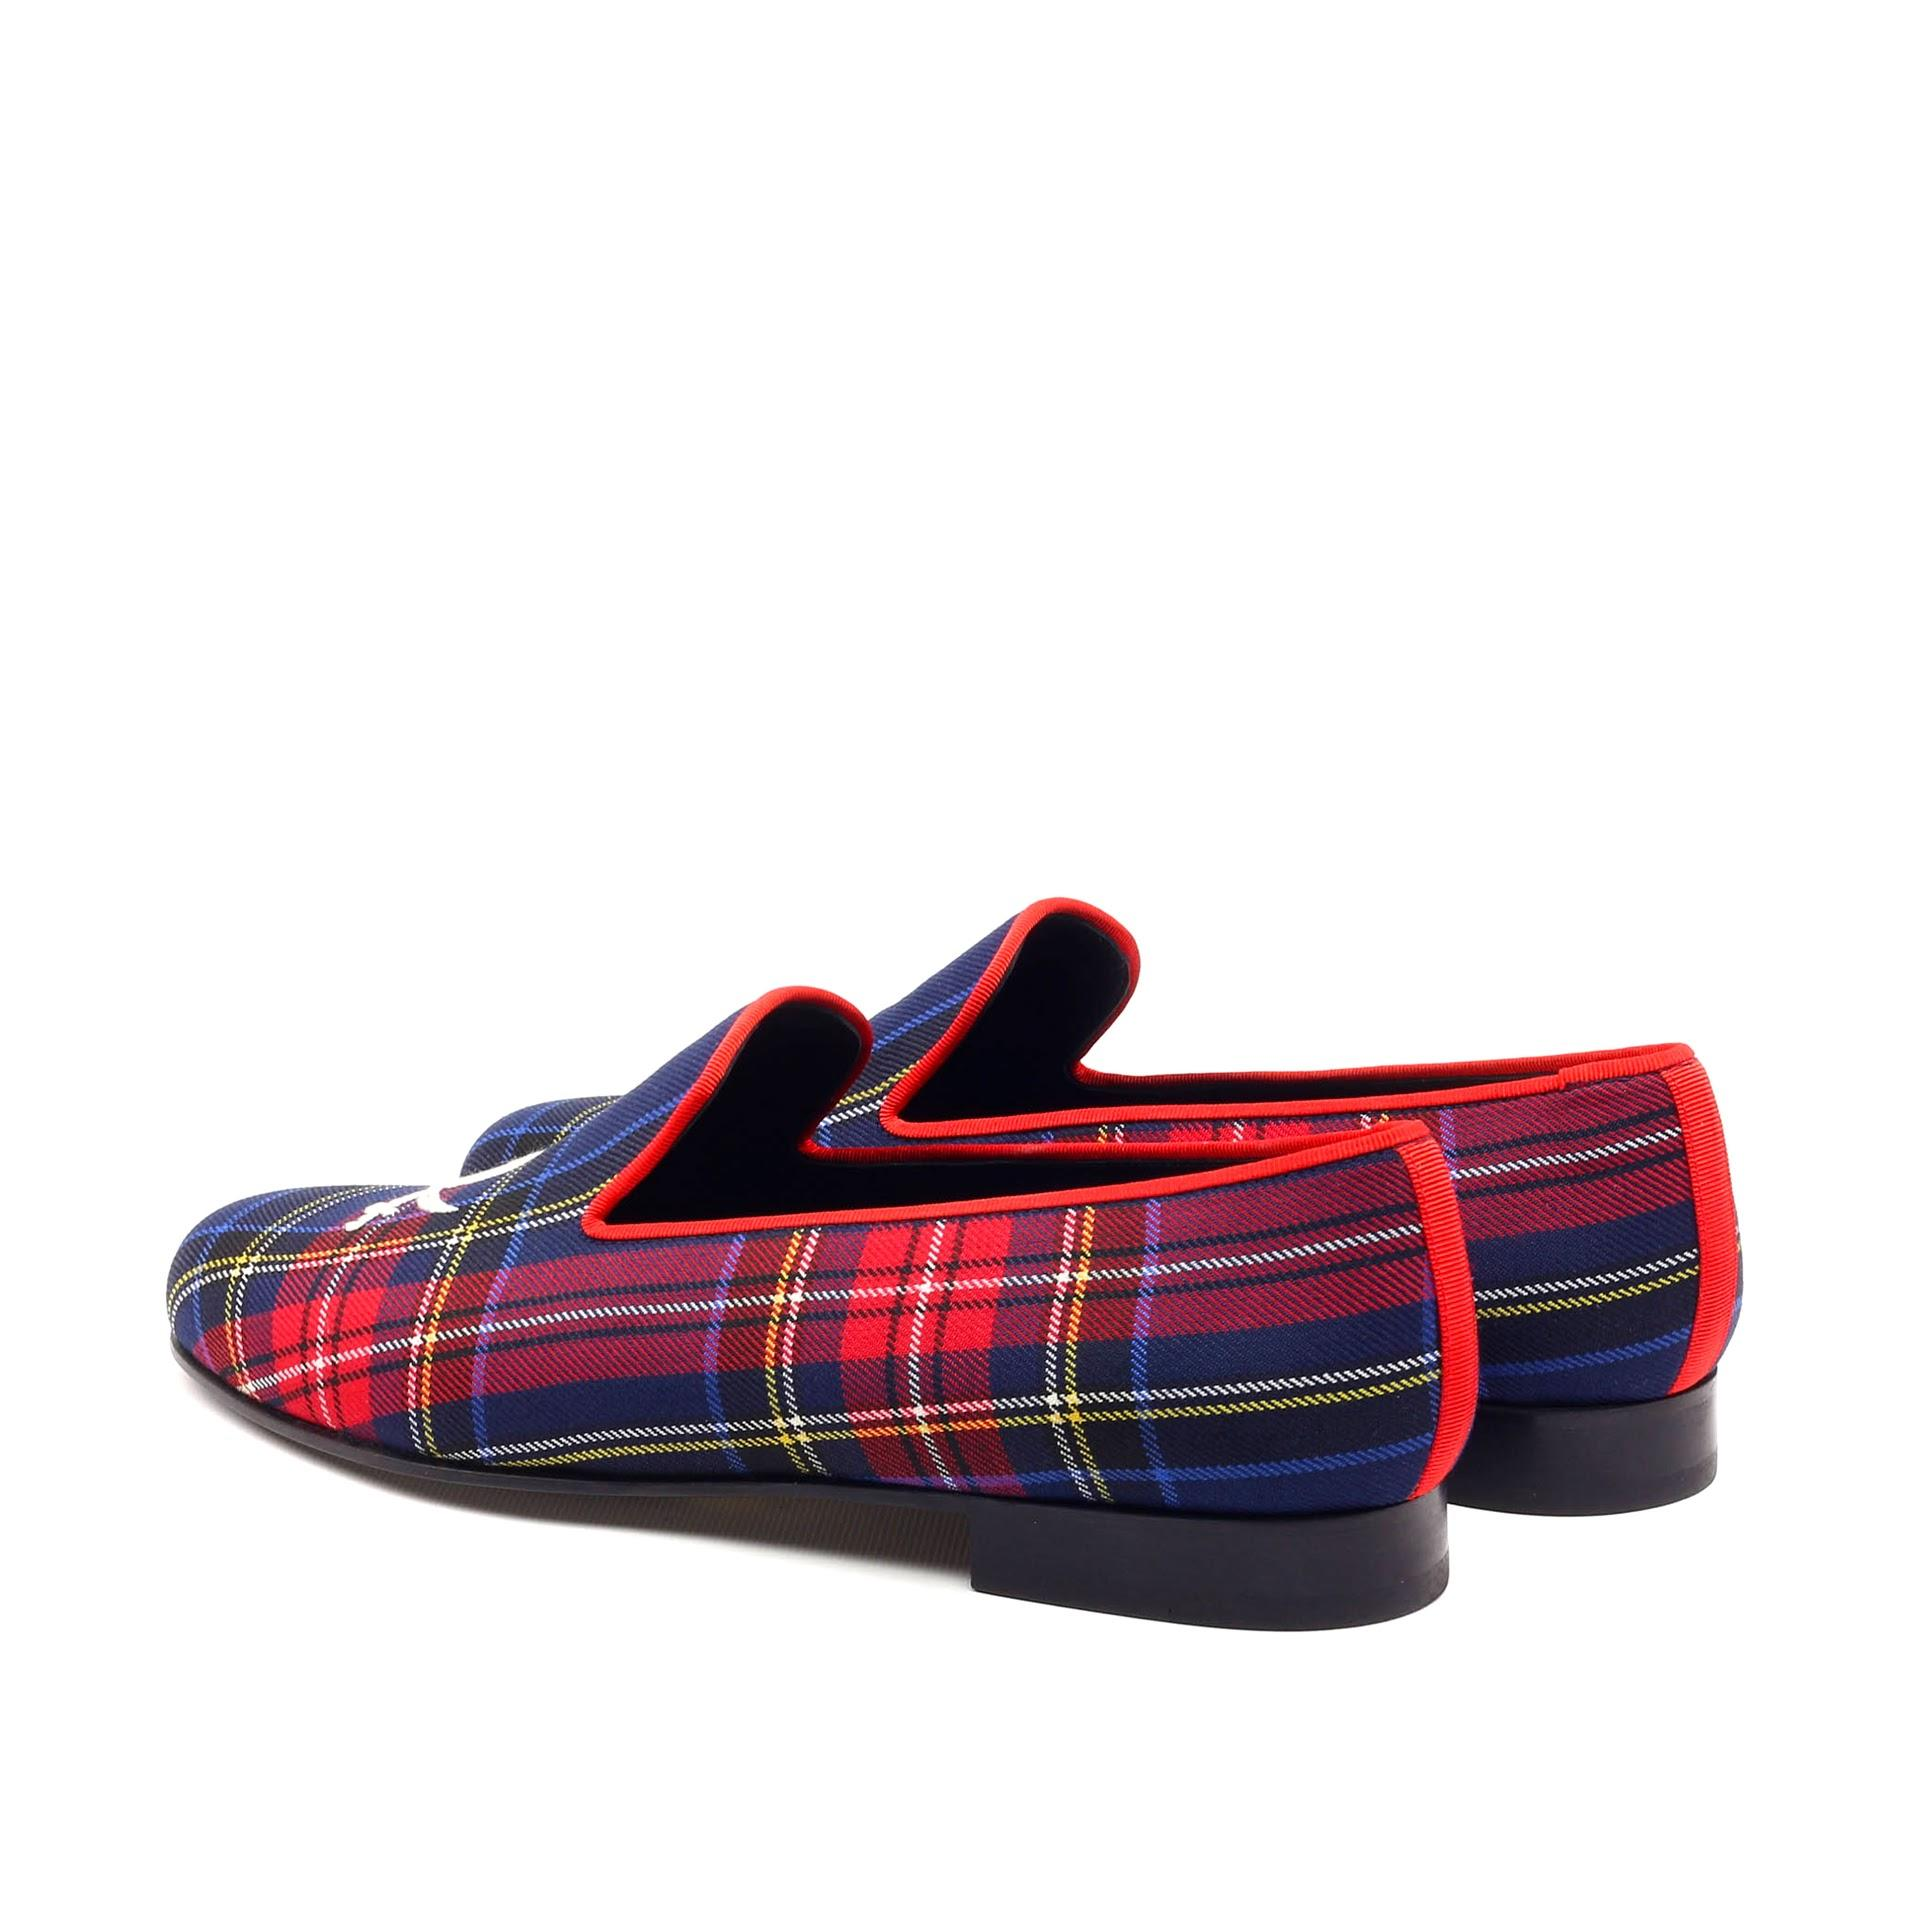 Manor of London 'Jolly Roger' Navy Mens Tartan Leather Luxury Slip On Slippers Back Side View